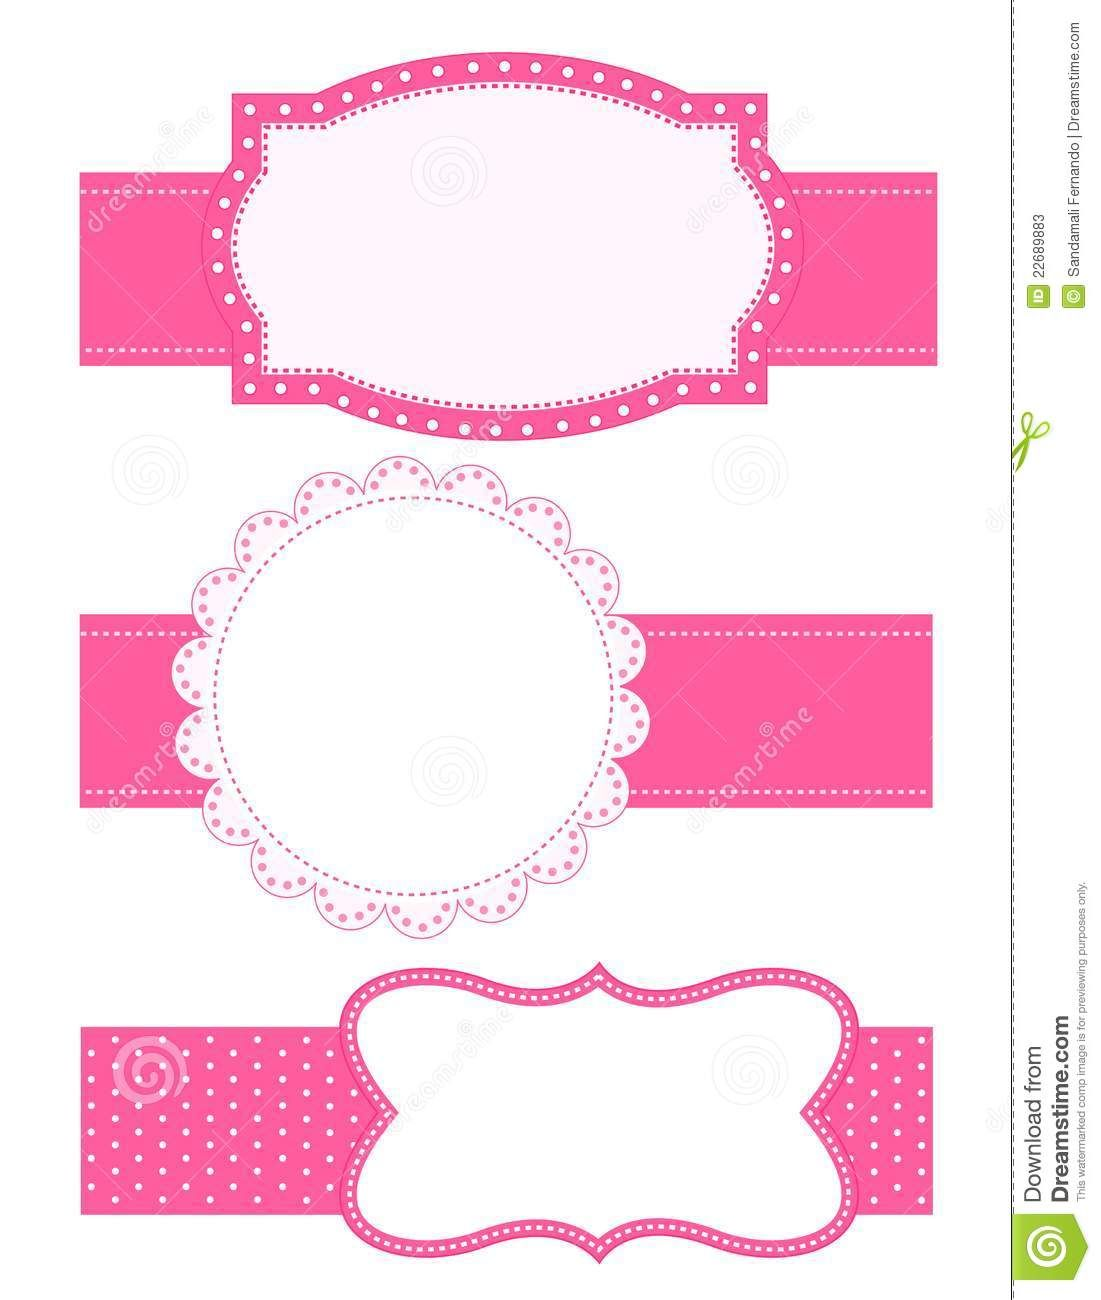 Polka Dot Background Frame - Download From Over 49 Million High ...